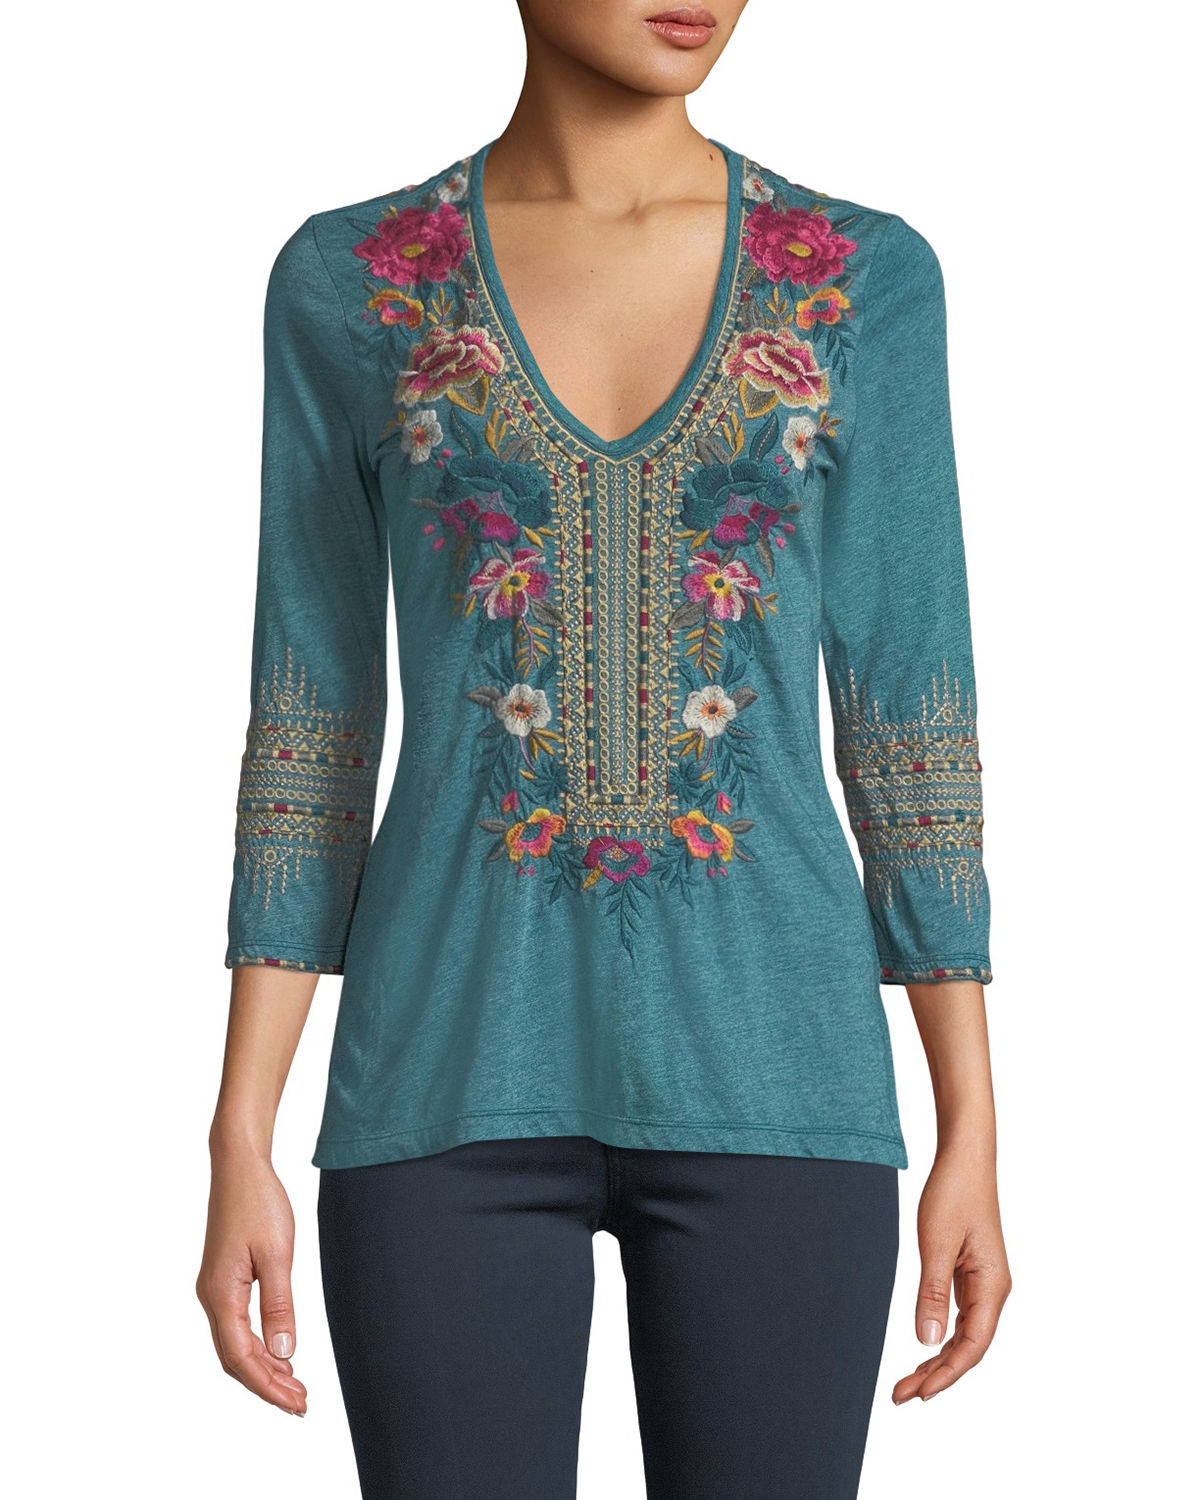 Katina 3/4-Sleeve Embroidered T-Shirt, Plus Size